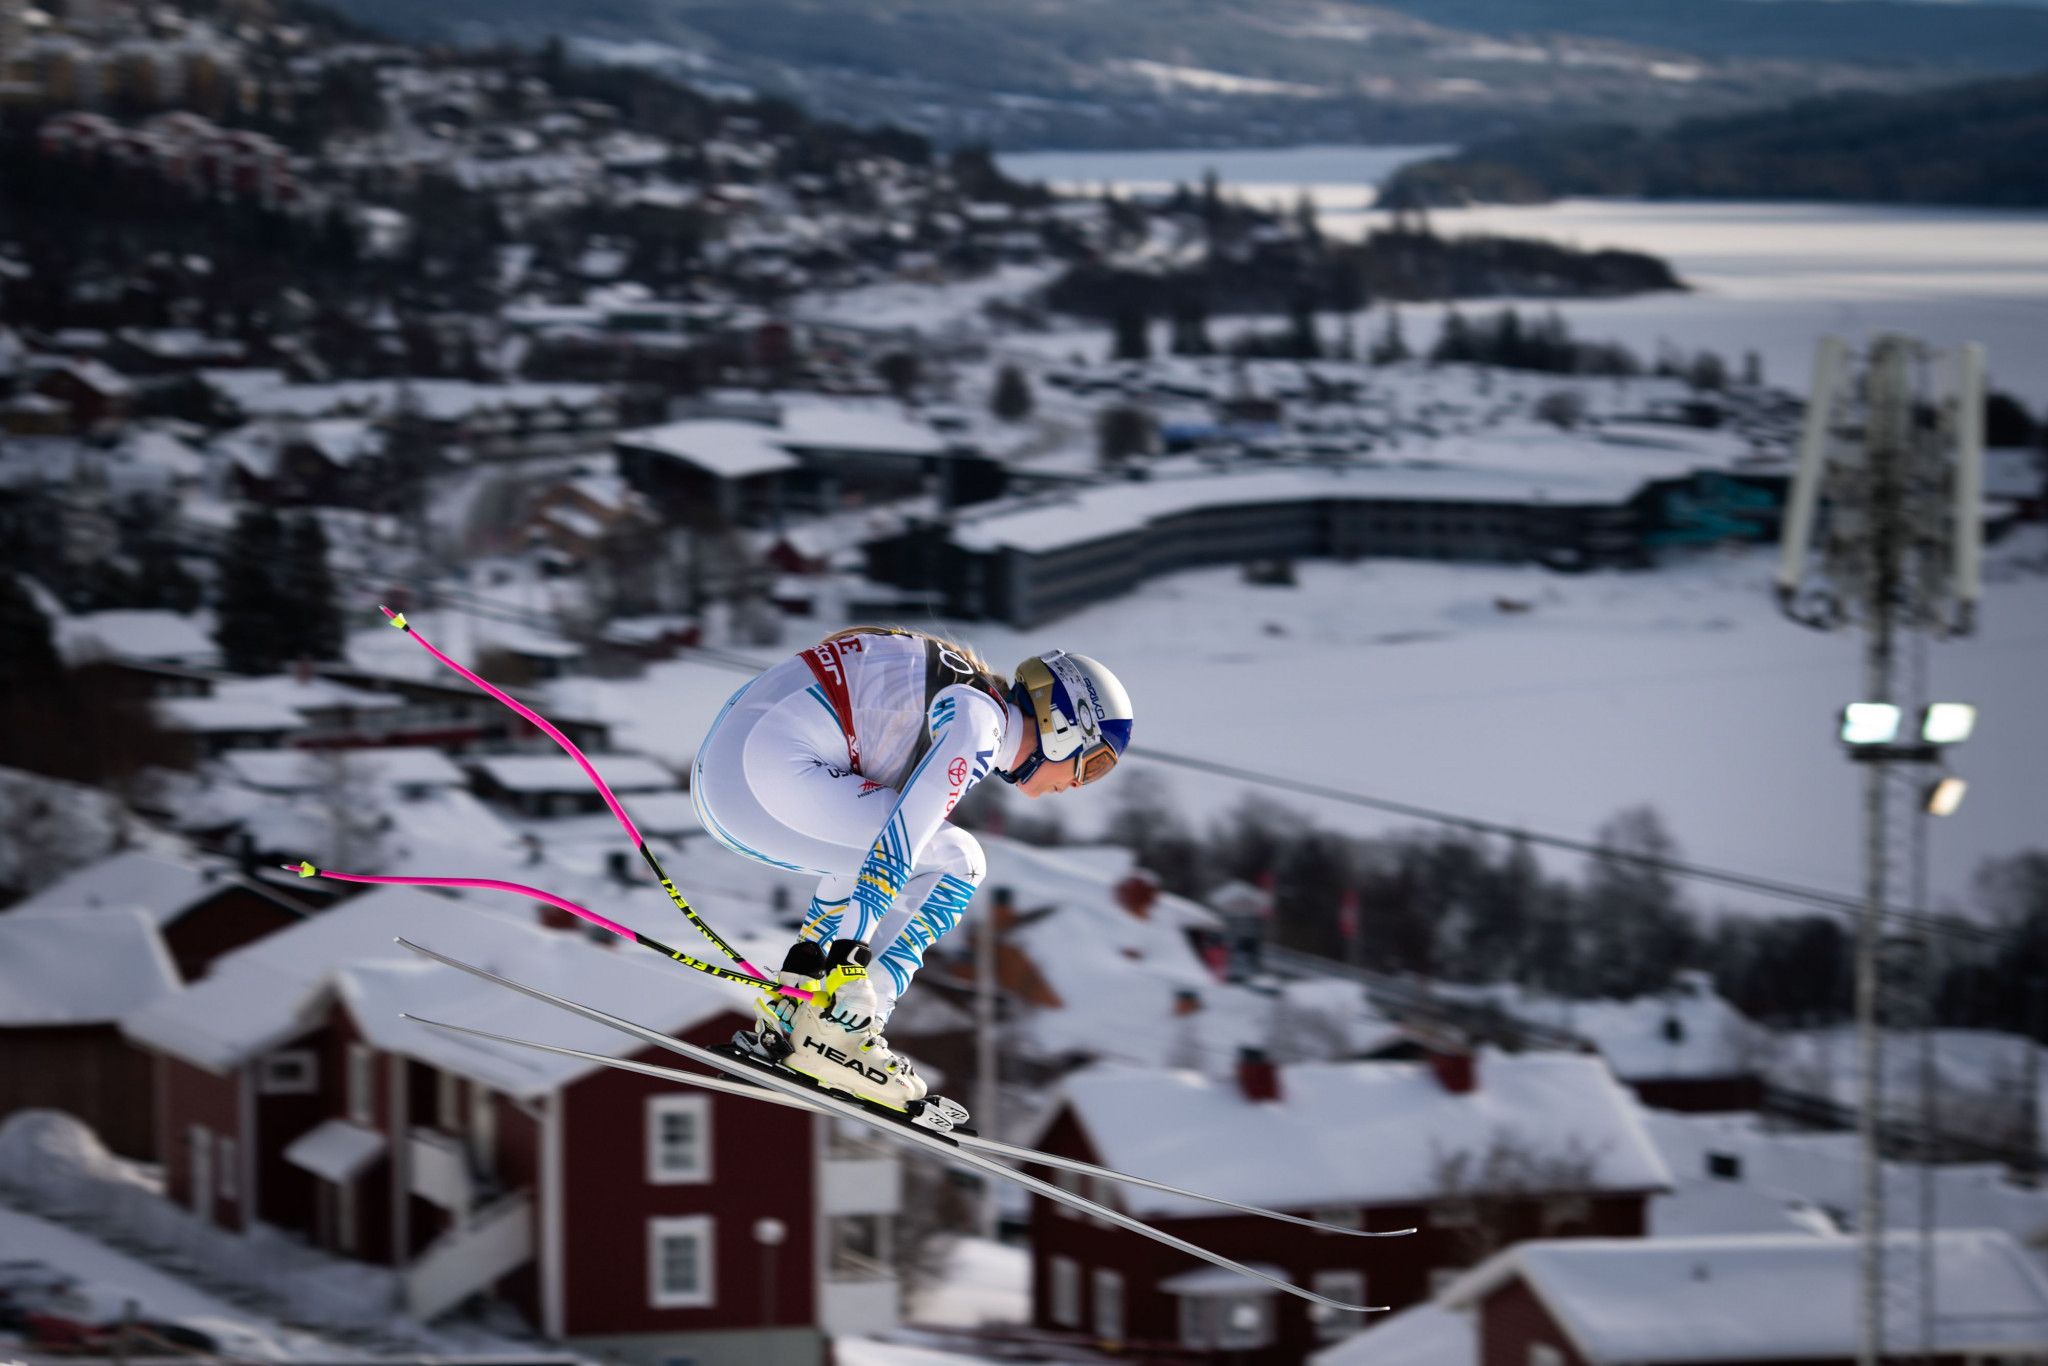 Fabrice Coffrini's winning picture of Lindsey Vonn was taken during the FIS Alpine World Championships in Åre ©Getty Images